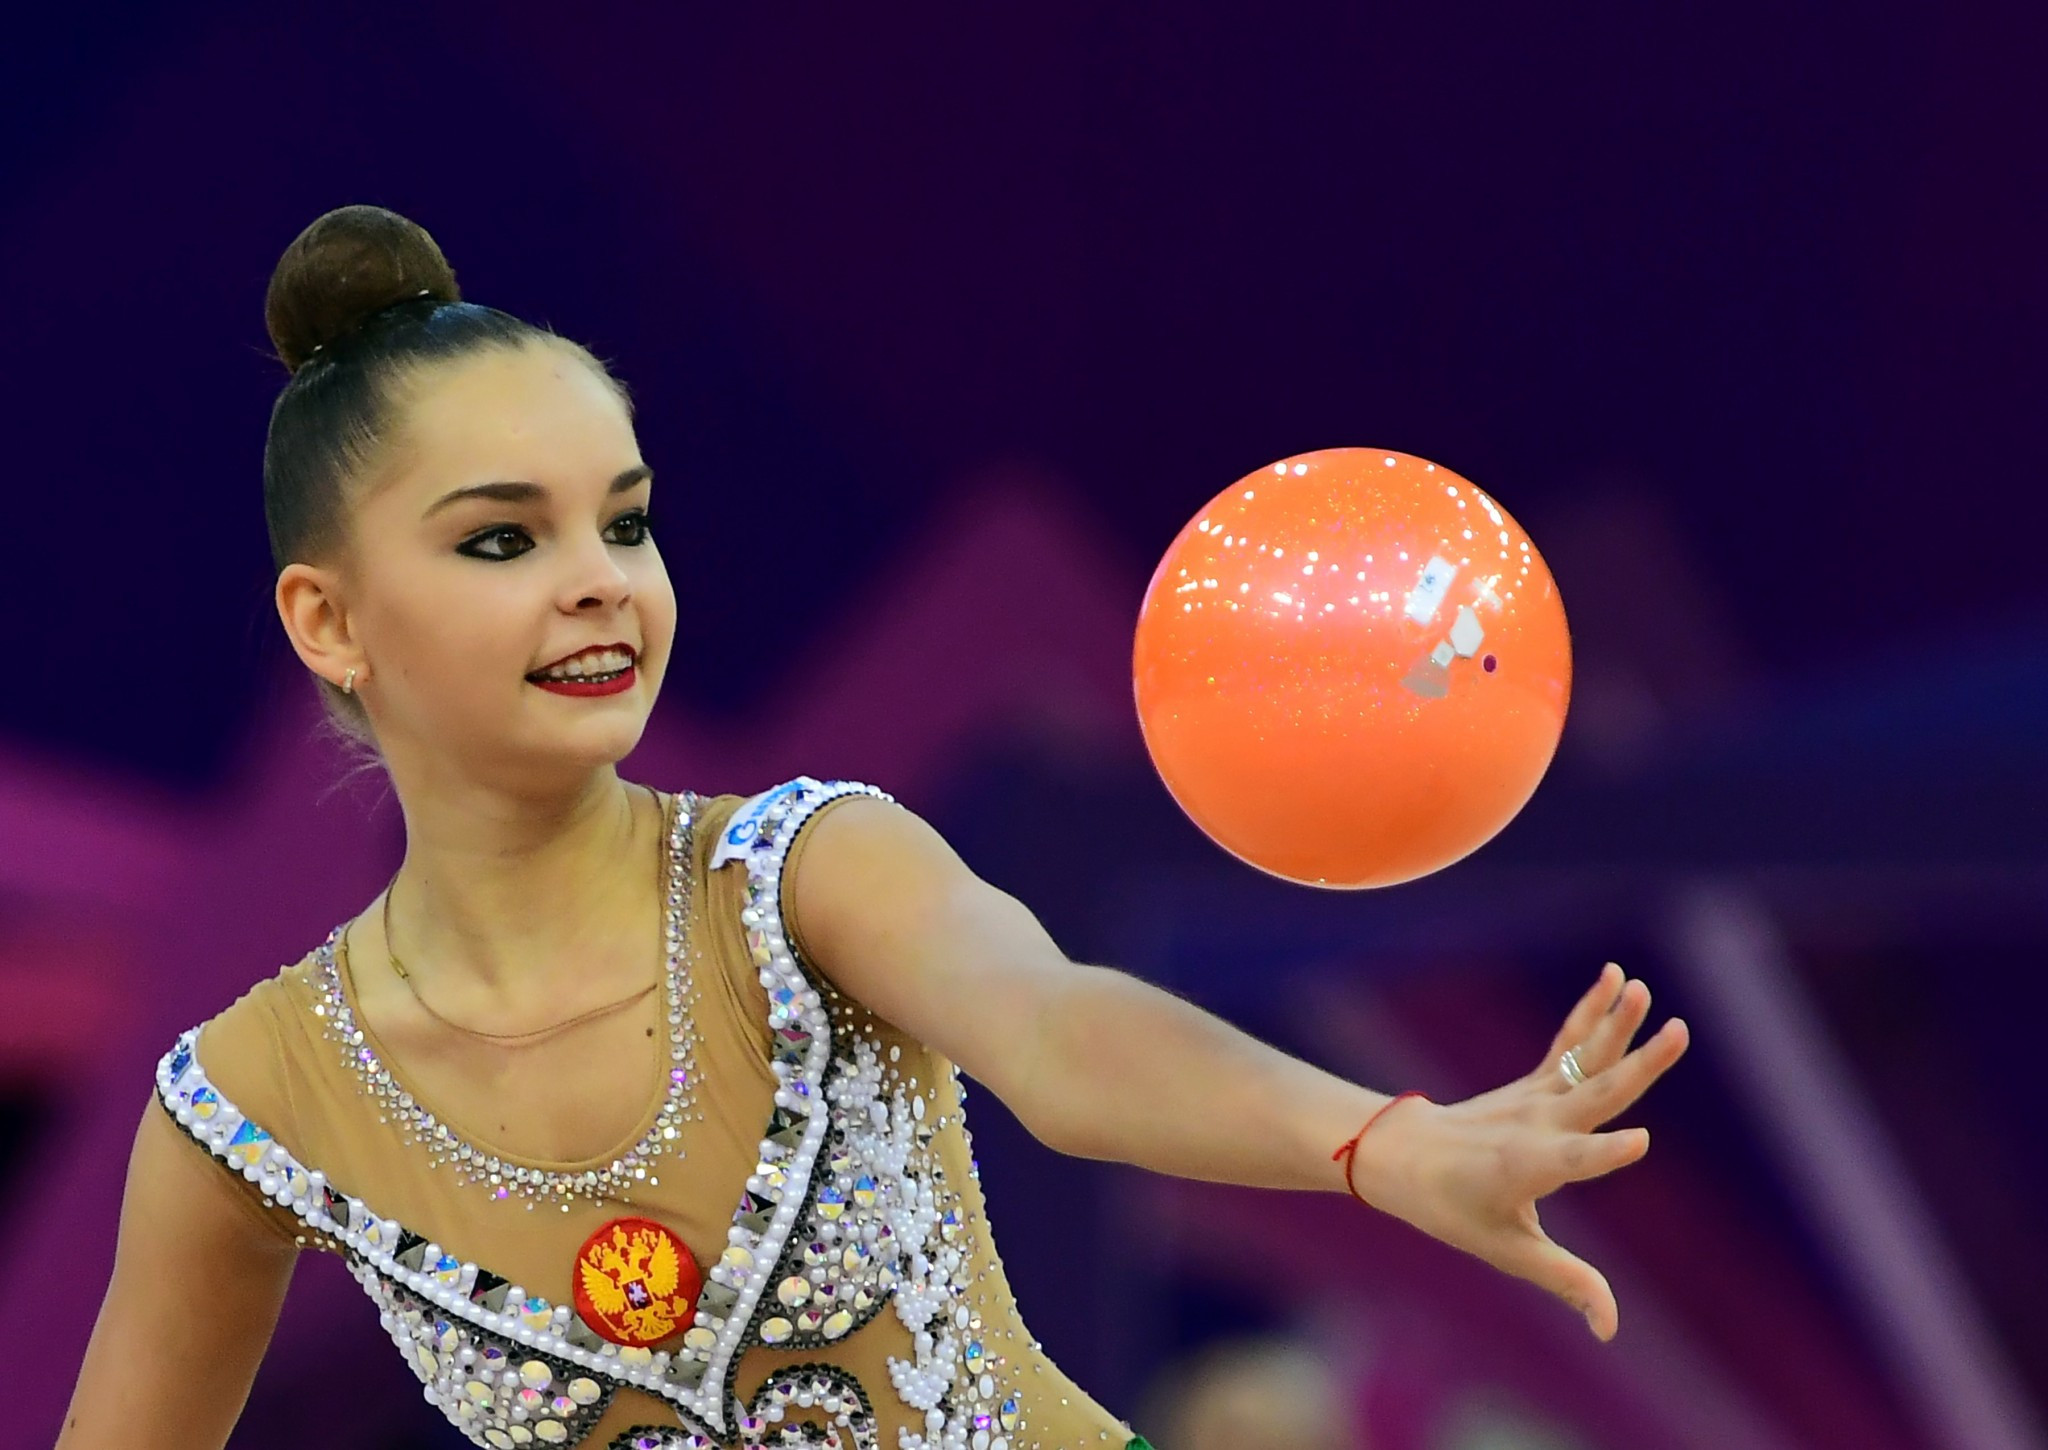 Arina Averina won the ball gold medal in Pesaro ©Getty Images